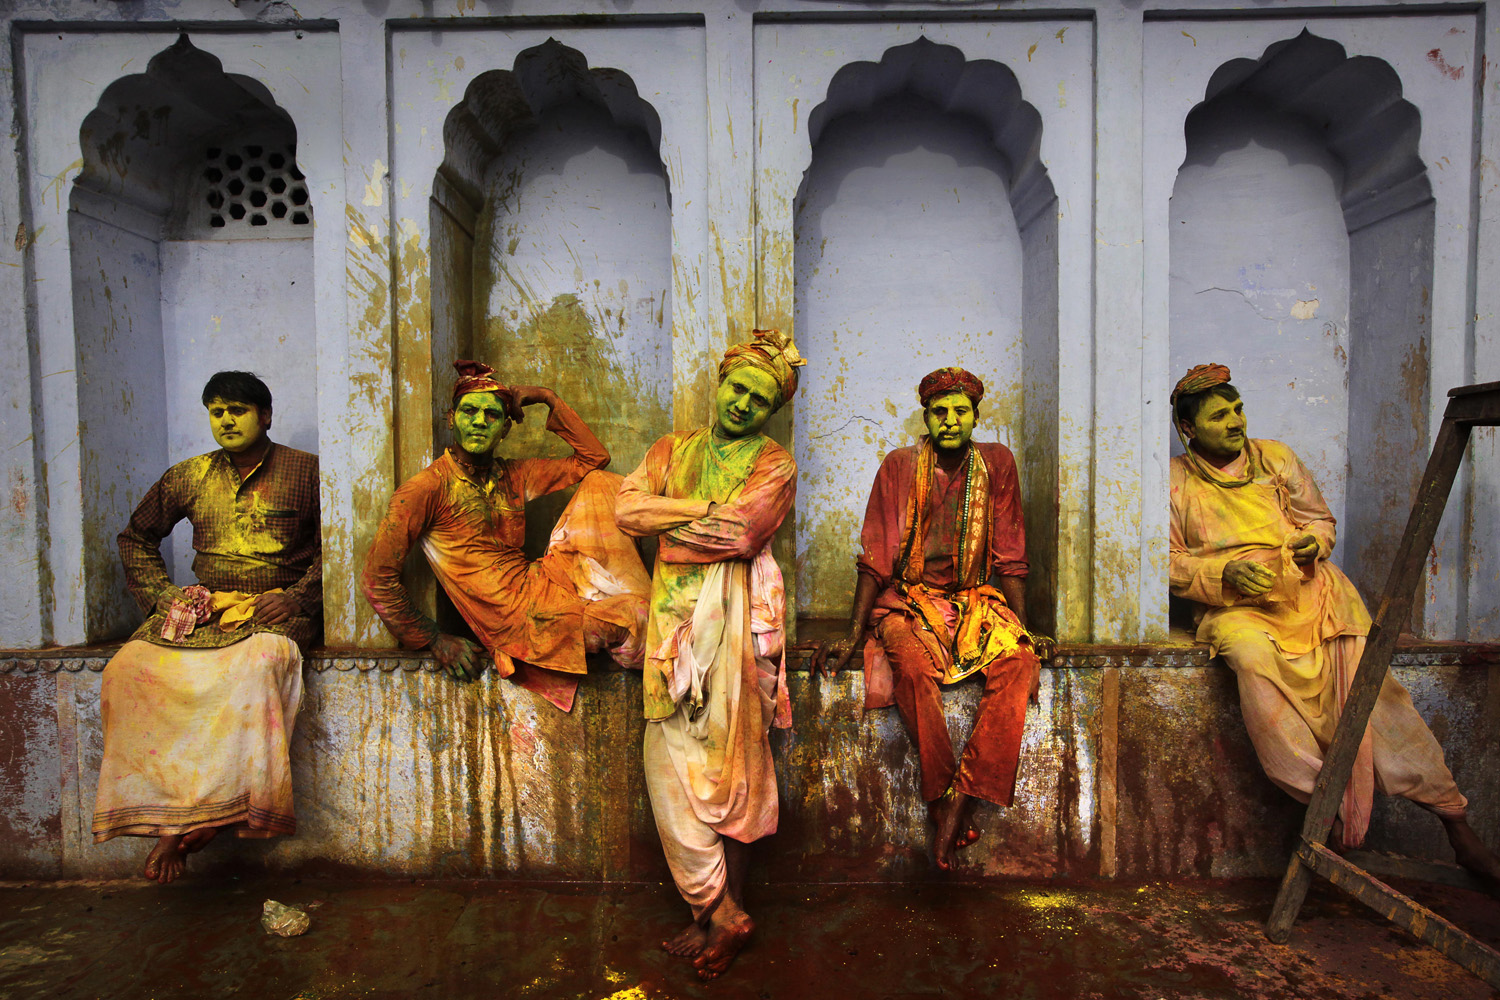 March 22, 2013. Indian villagers from Nandgaon wait for the arrival of villagers from Barsana to play Lathmar Holi at the Nandagram temple famous for Lord Krishna and his brother Balram, in Nandgaon, 120 kilometers ( 75 miles) from New Delhi, India.